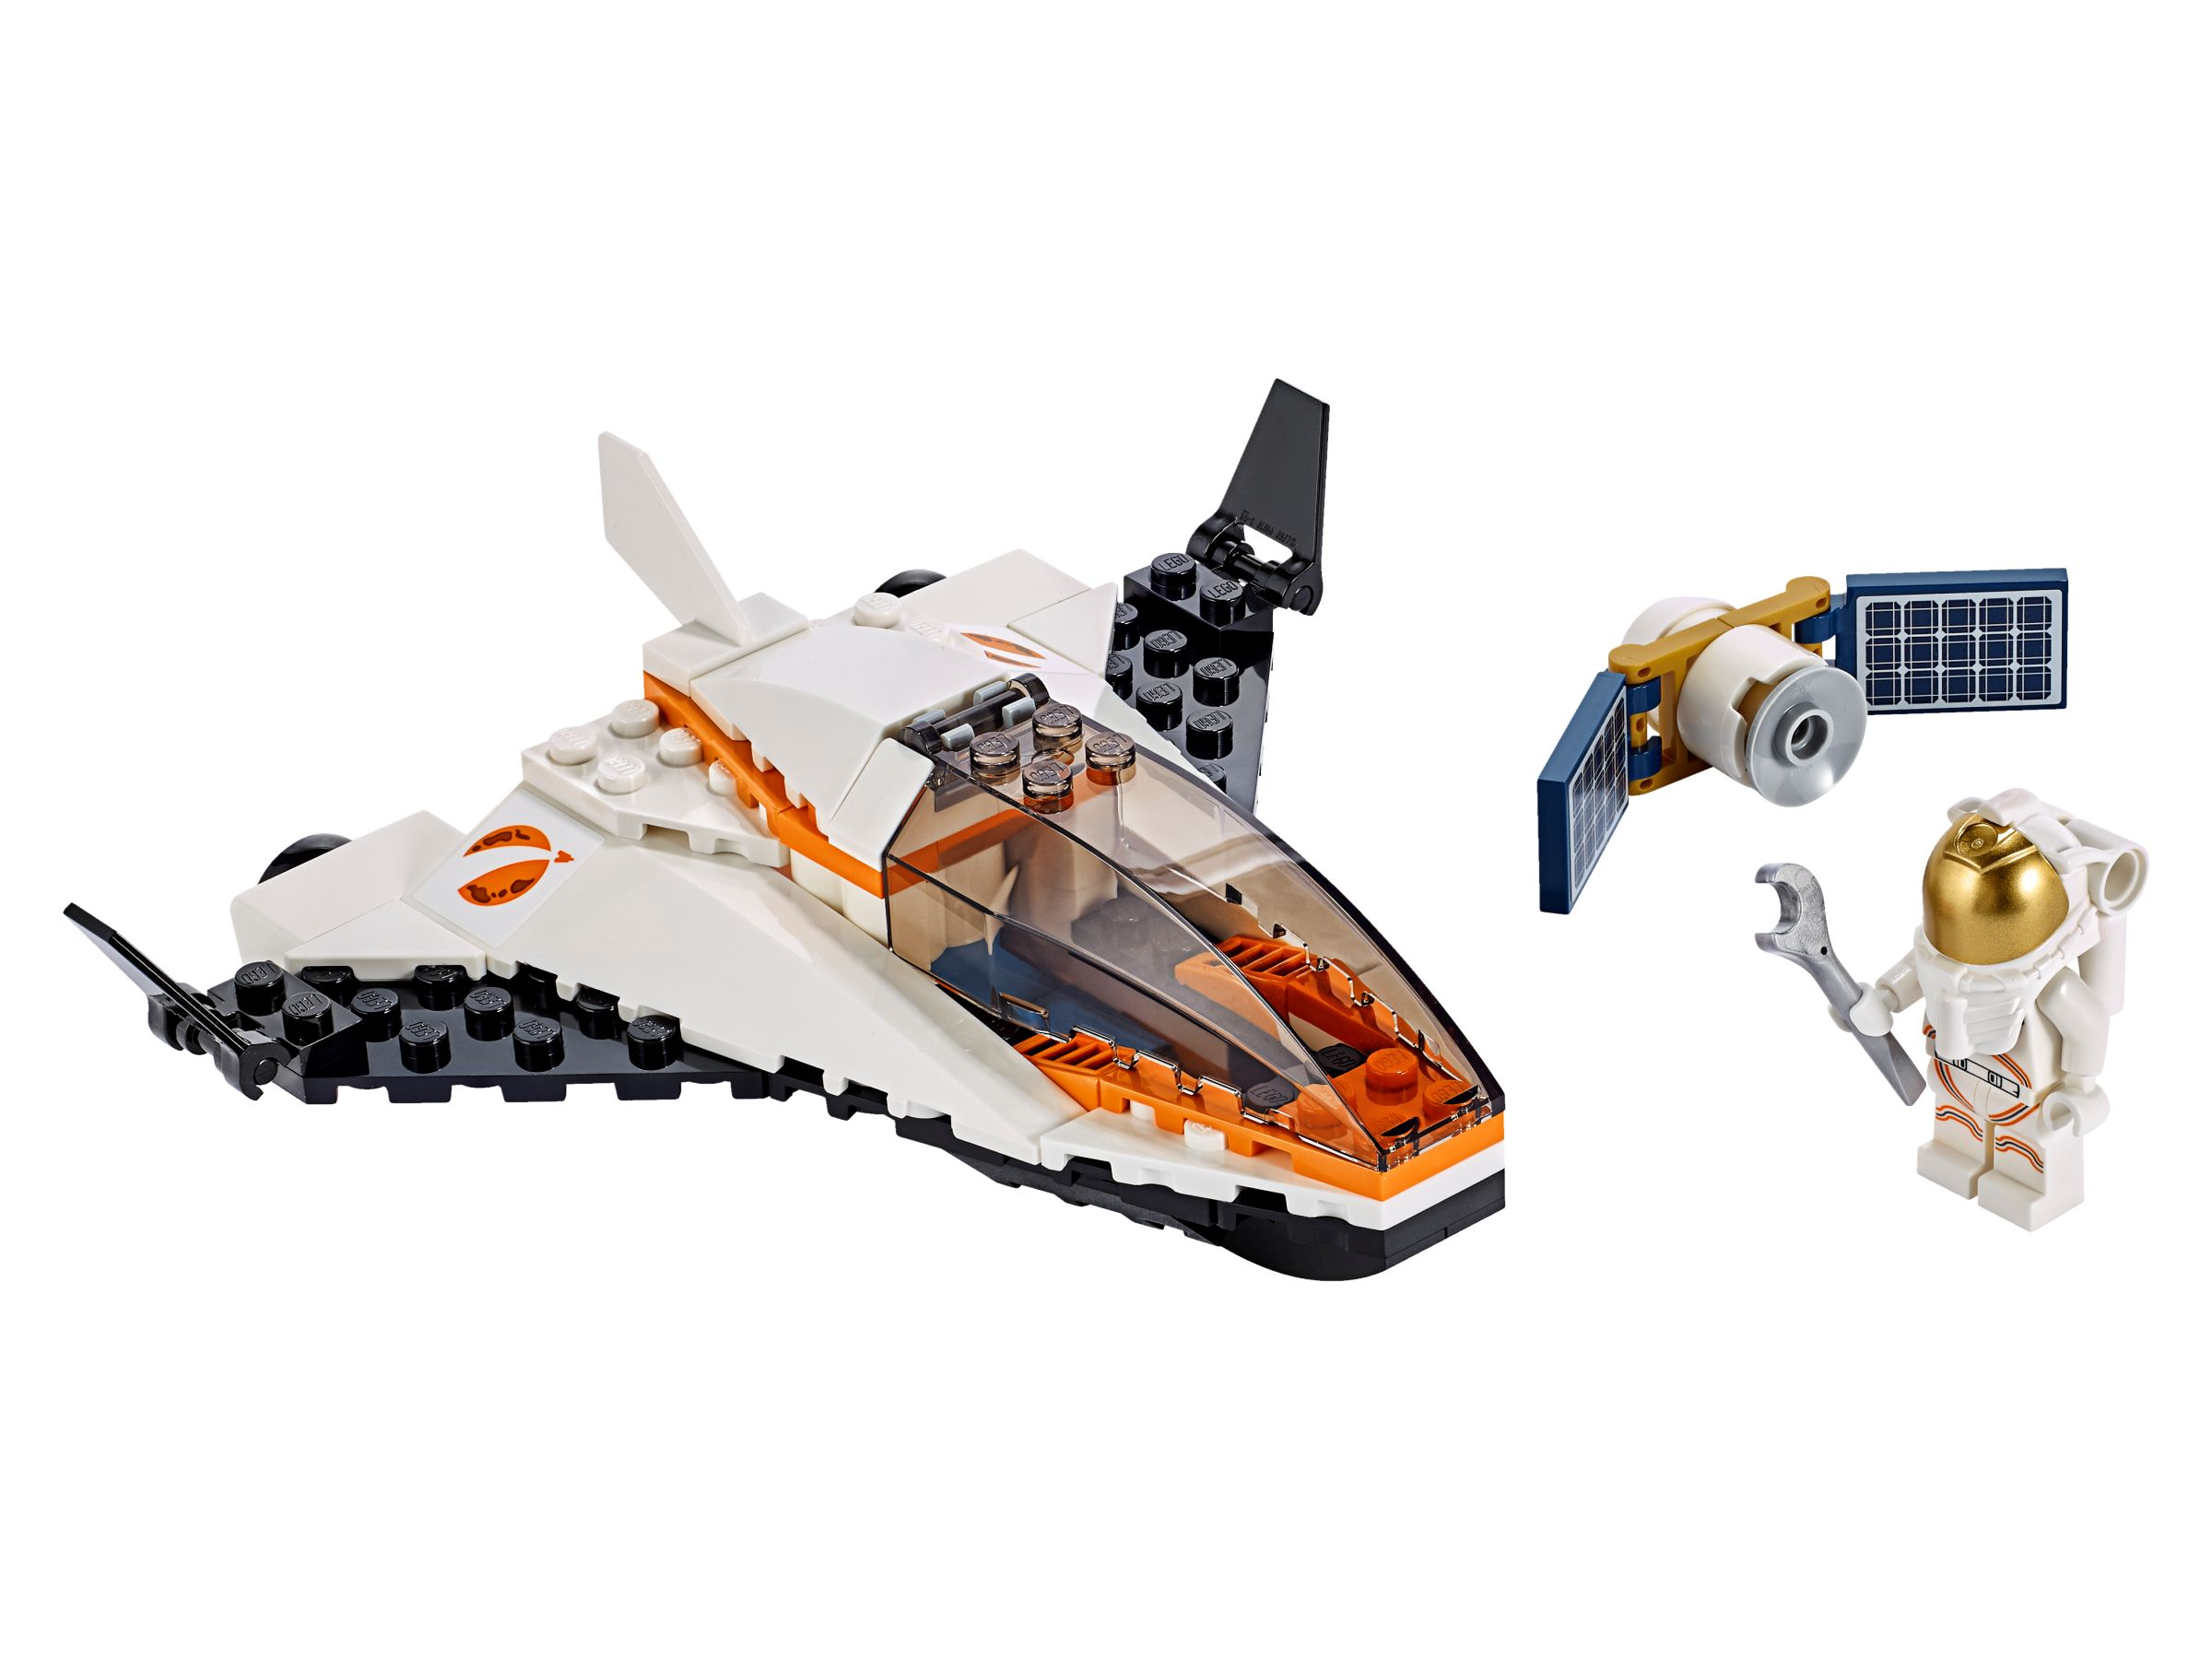 LEGO City 60224 Mars Mission Wartungs-Shuttle